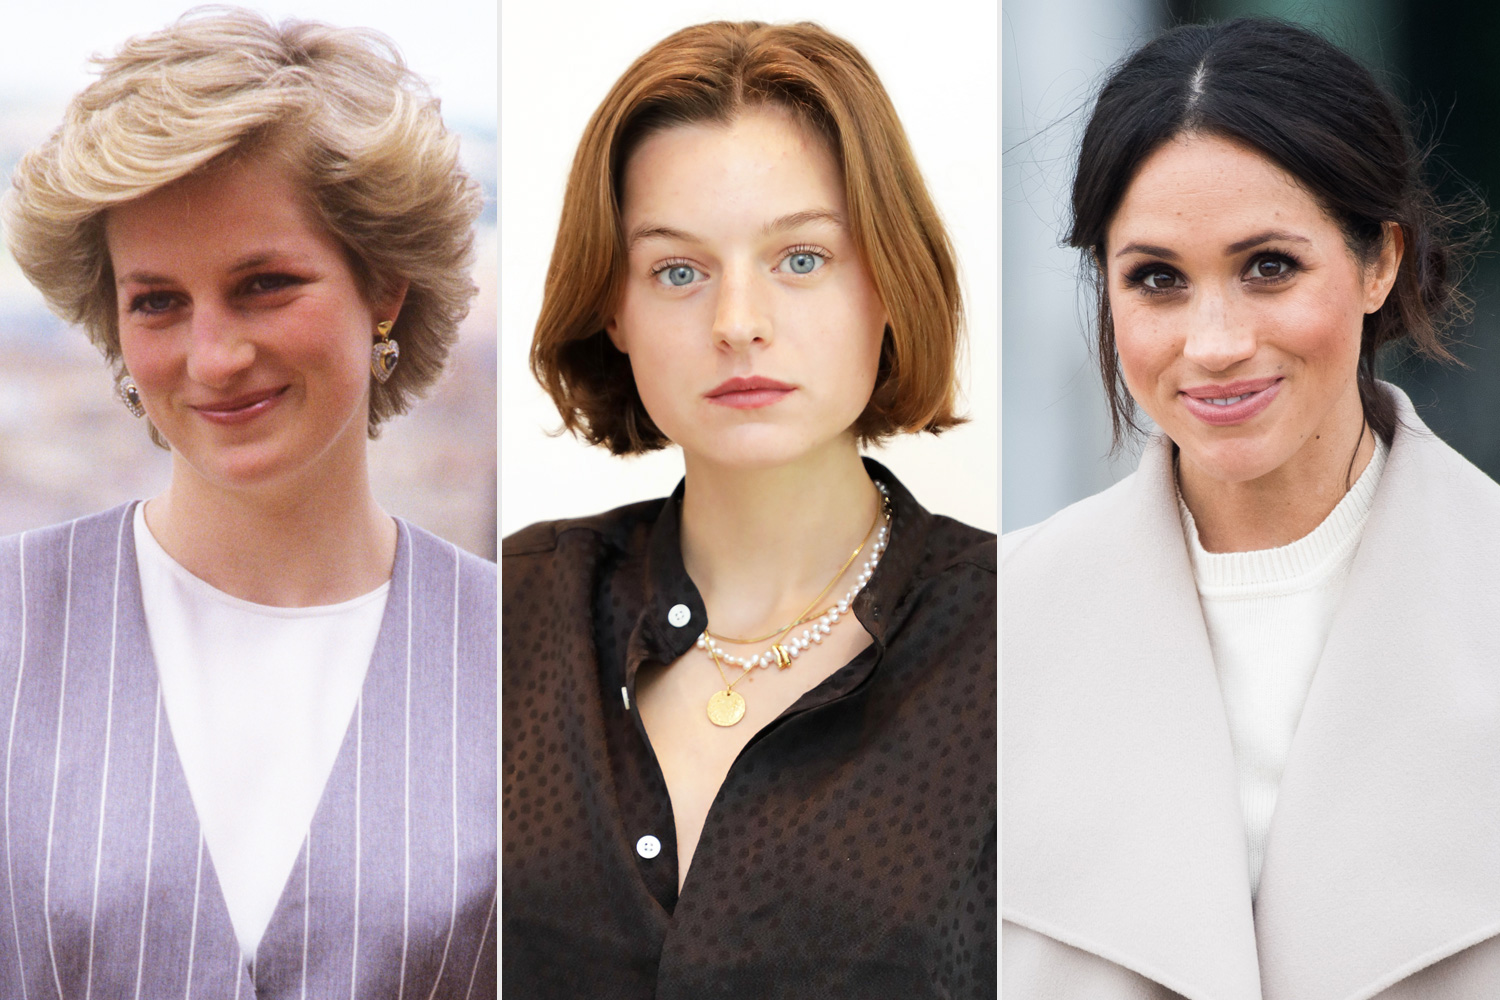 Emma Corrin,The Crown's Princess Diana, Thinks History Is Repeating Itself with Meghan Markle